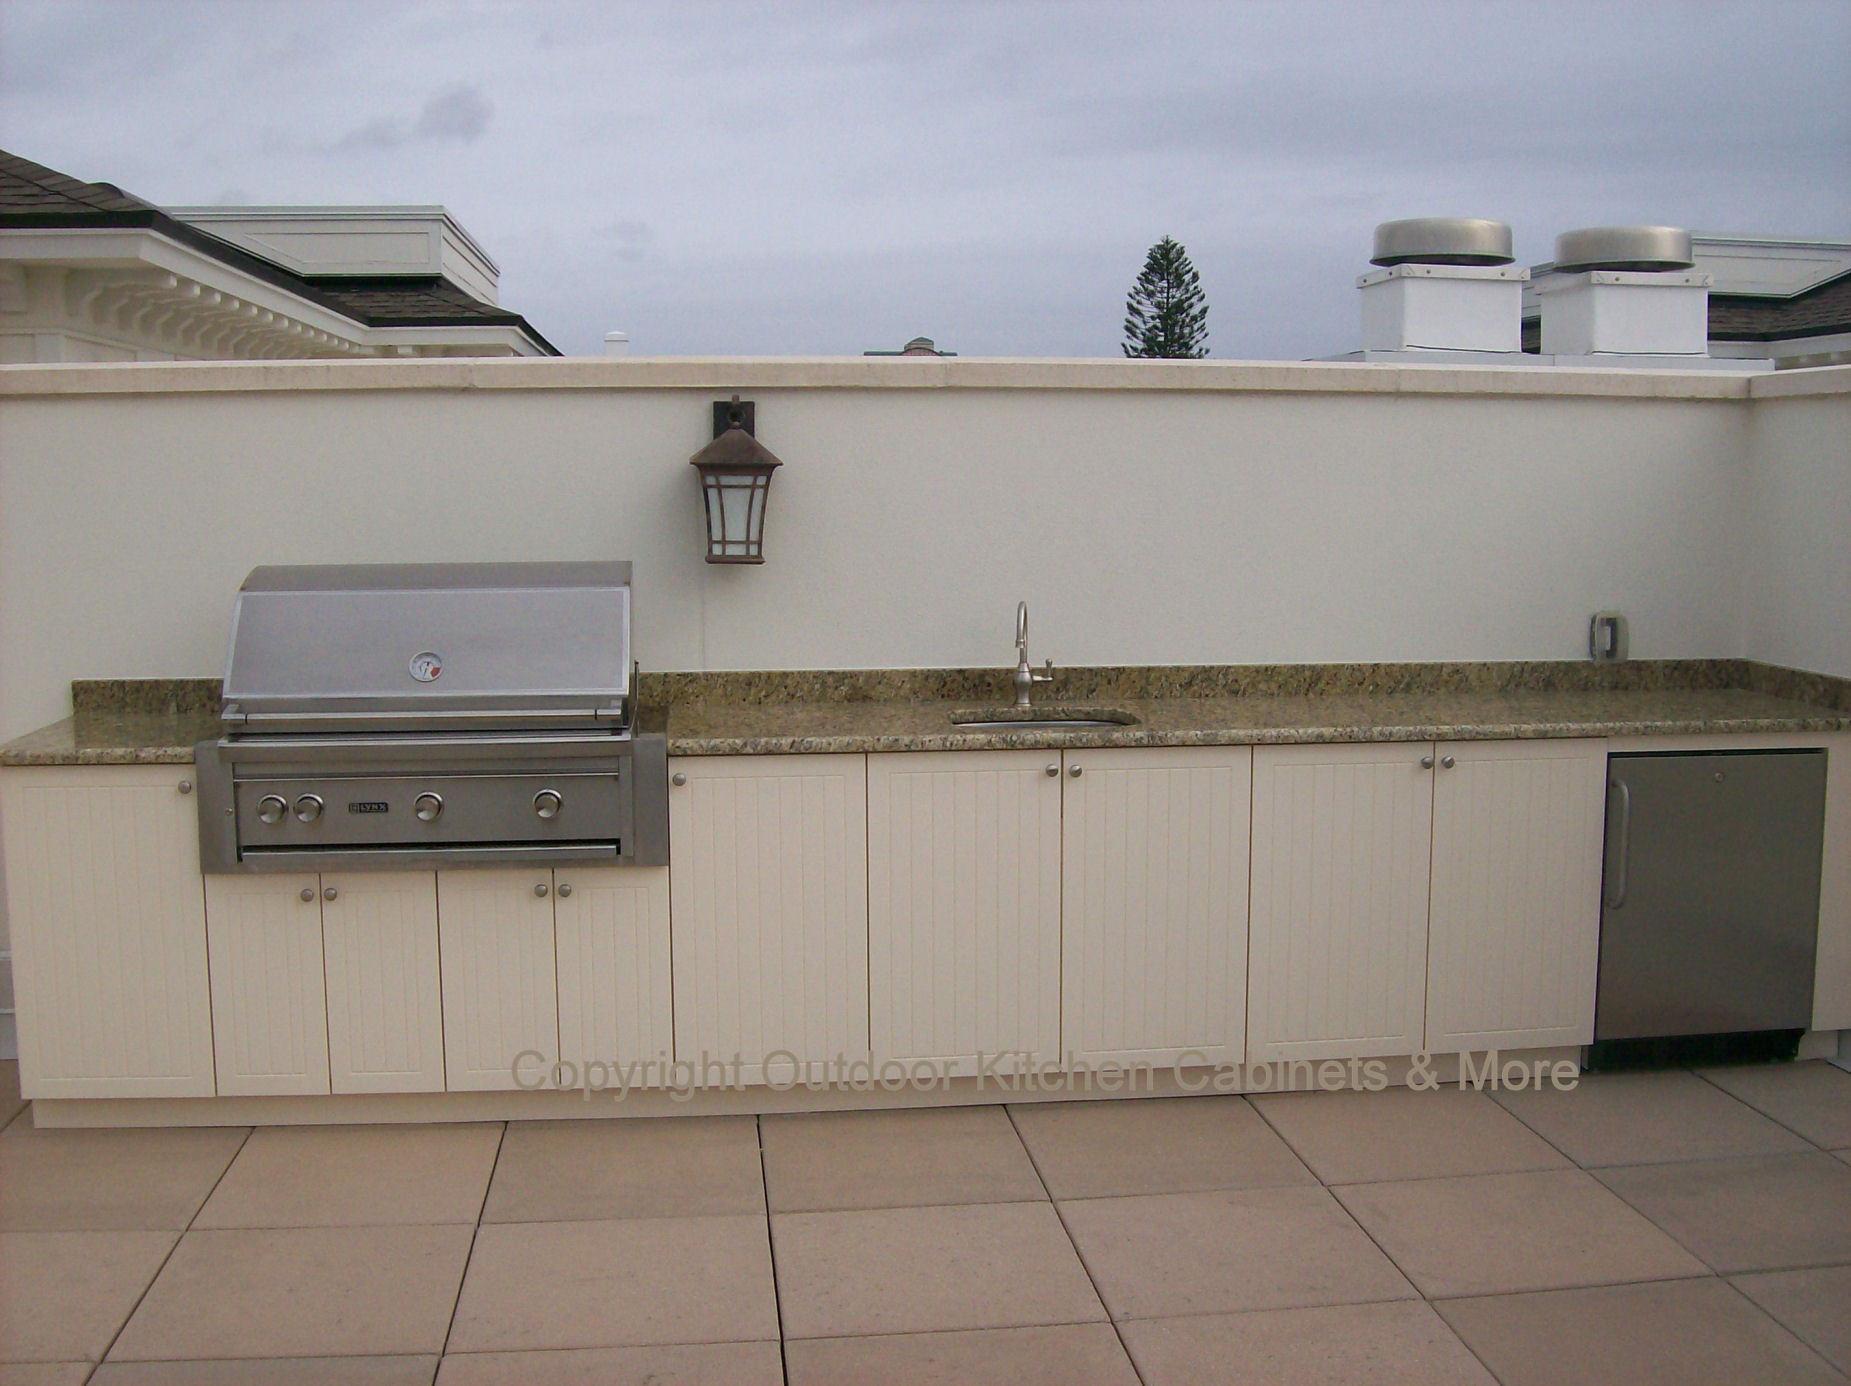 outdoor kitchen cabinets photo 1 - Outdoor Kitchen Cabinets